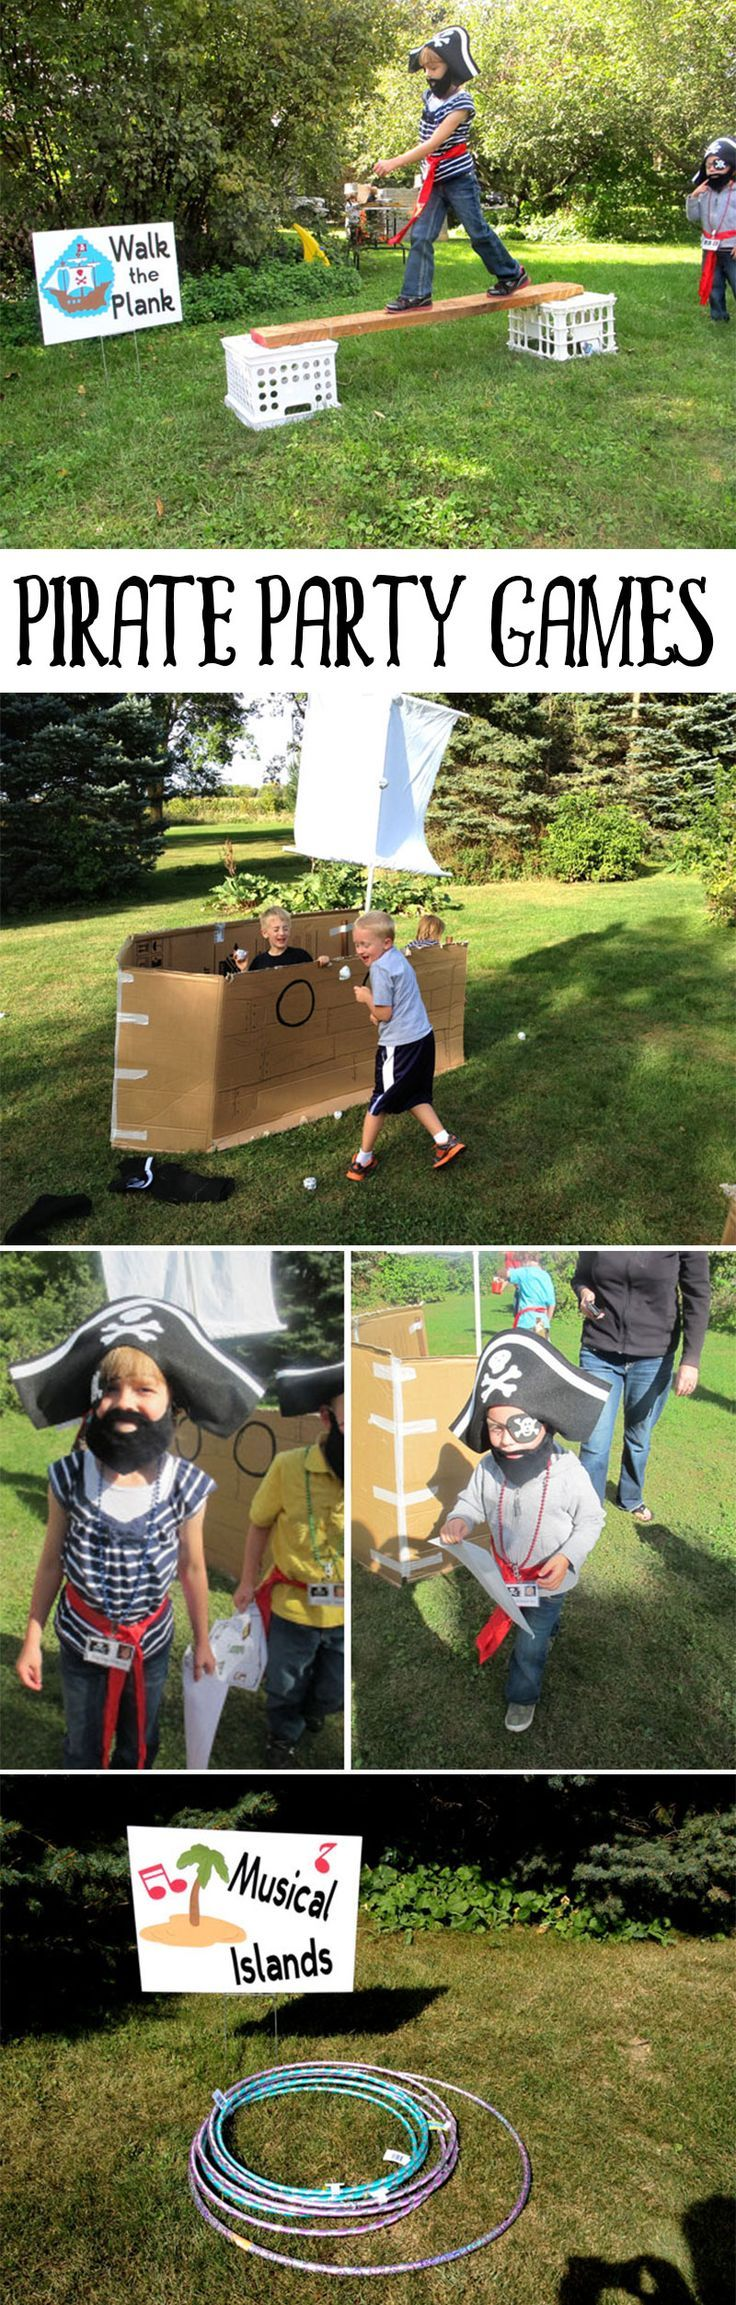 318 best Kids Party Games images on Pinterest | Birthdays, Infant ...